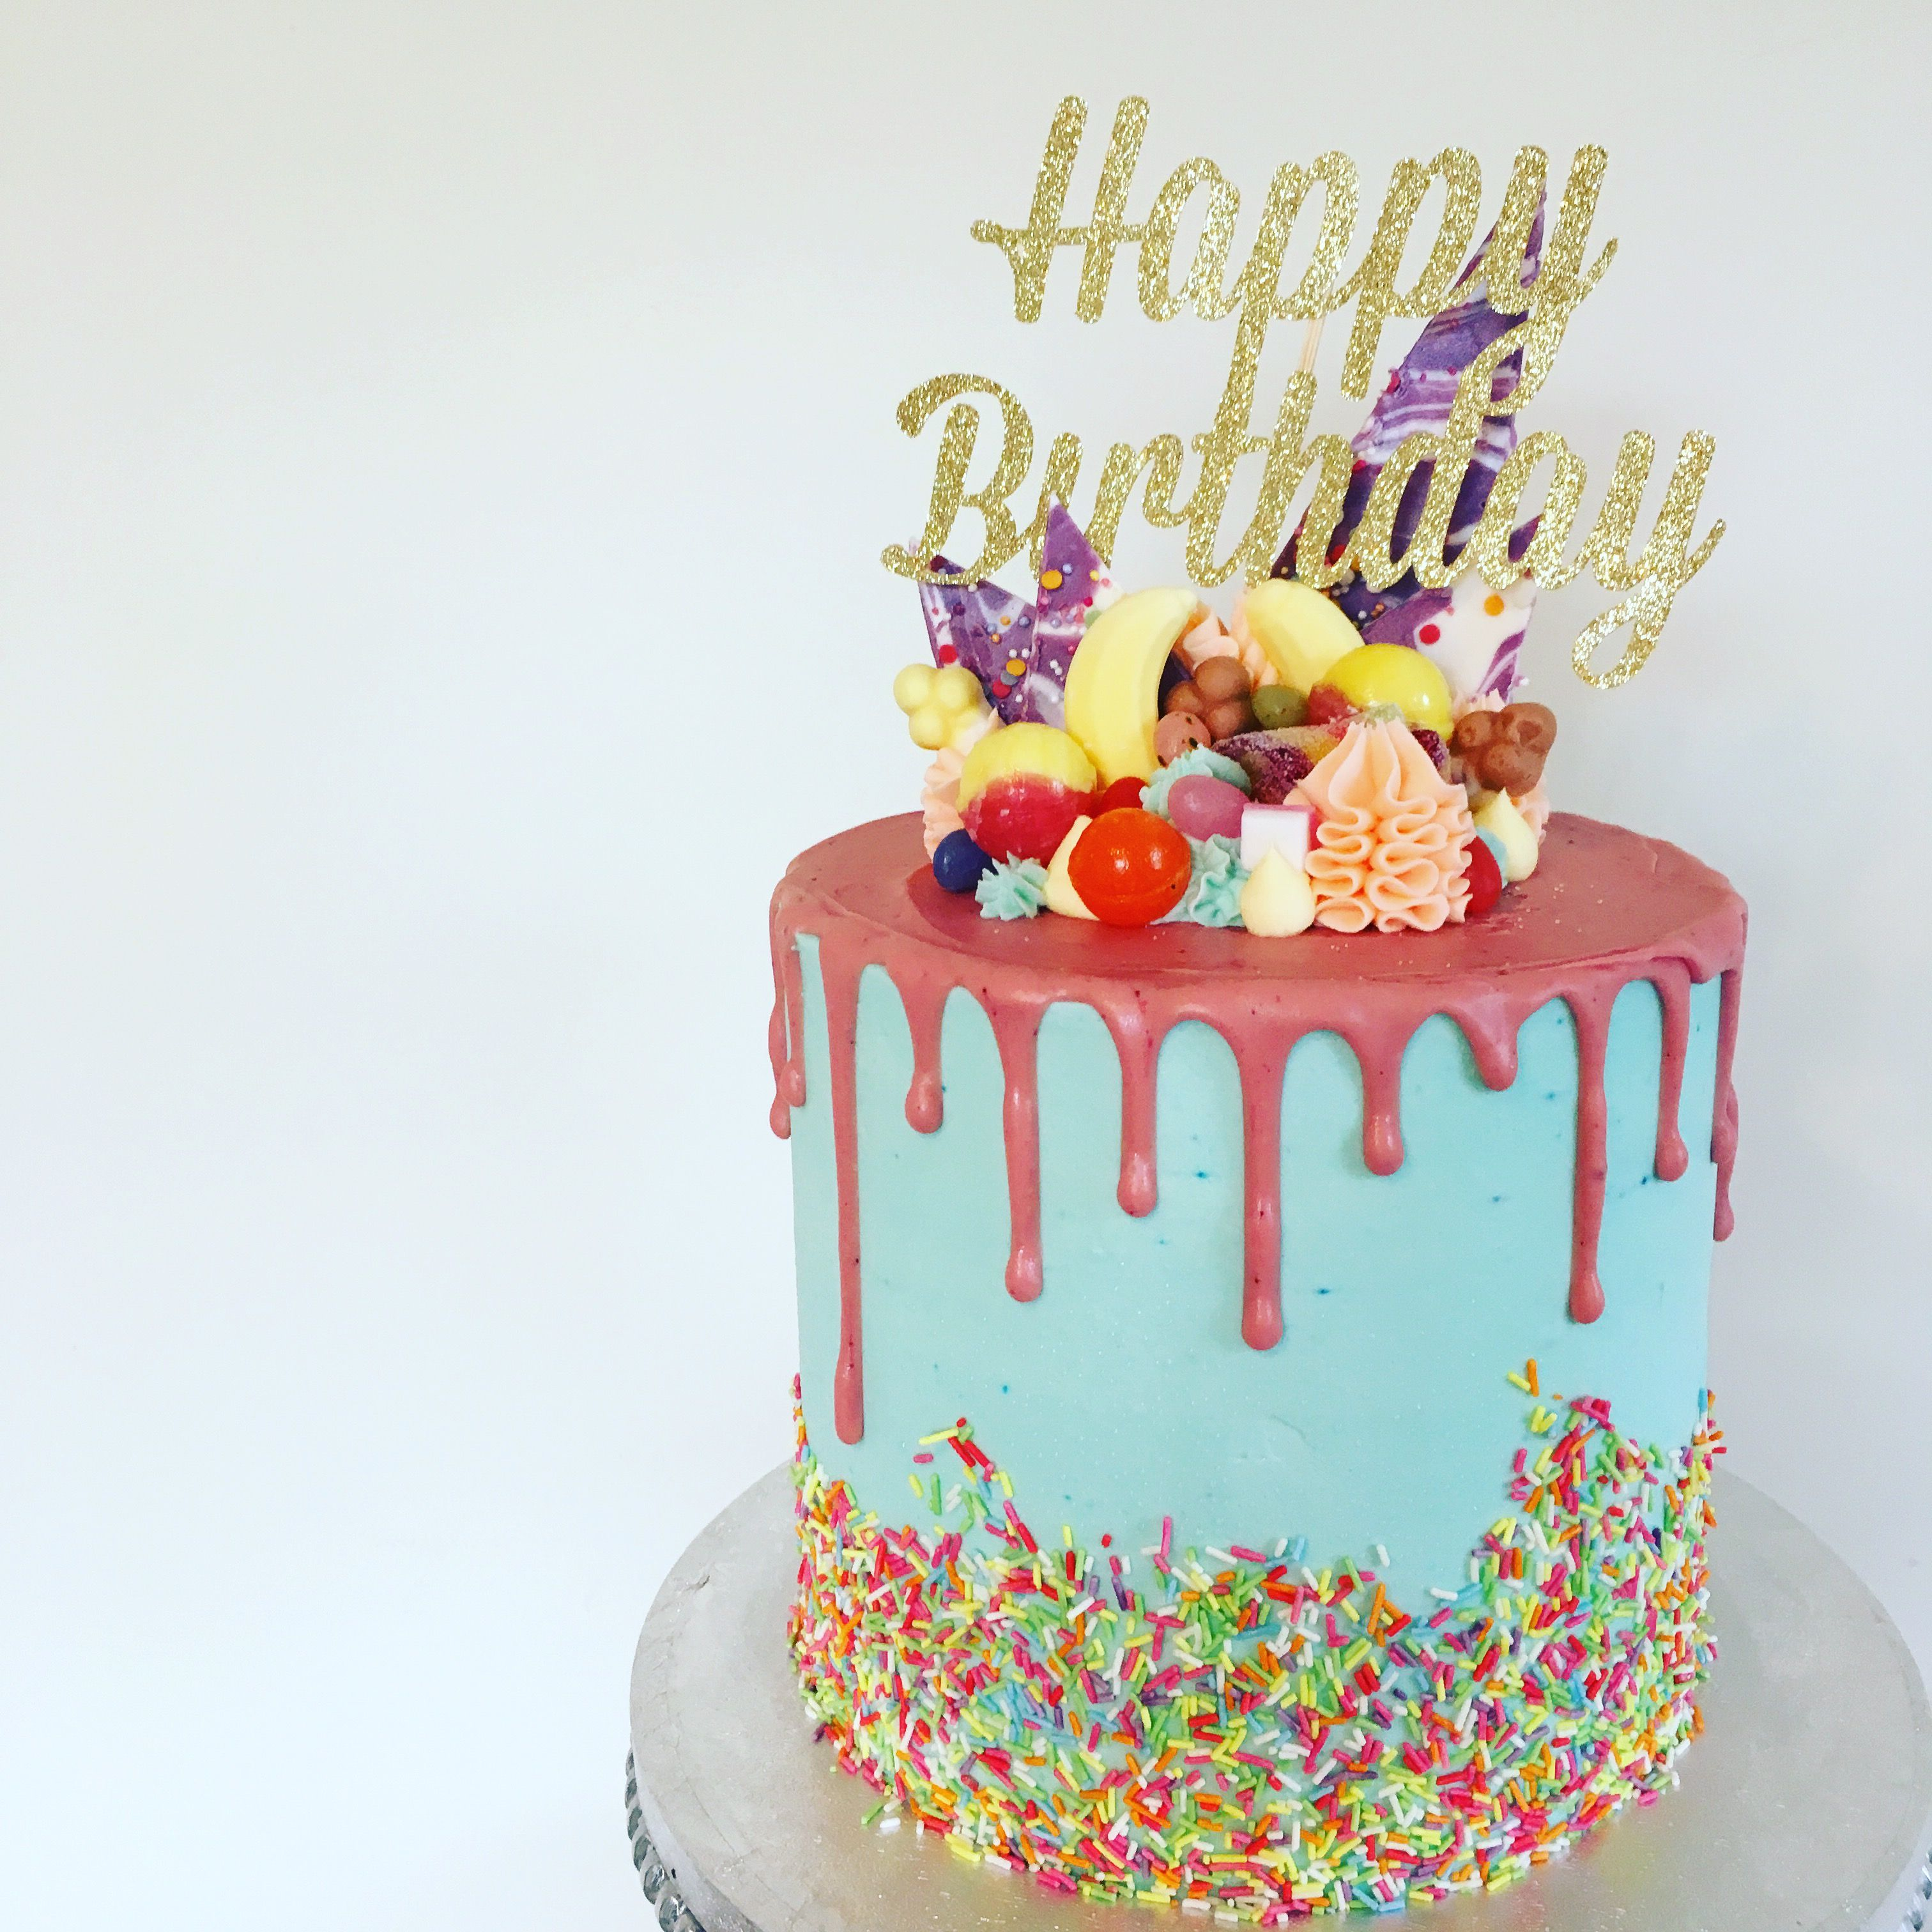 Classic Happy Birthday Drip Cake In Katherine Sabbath